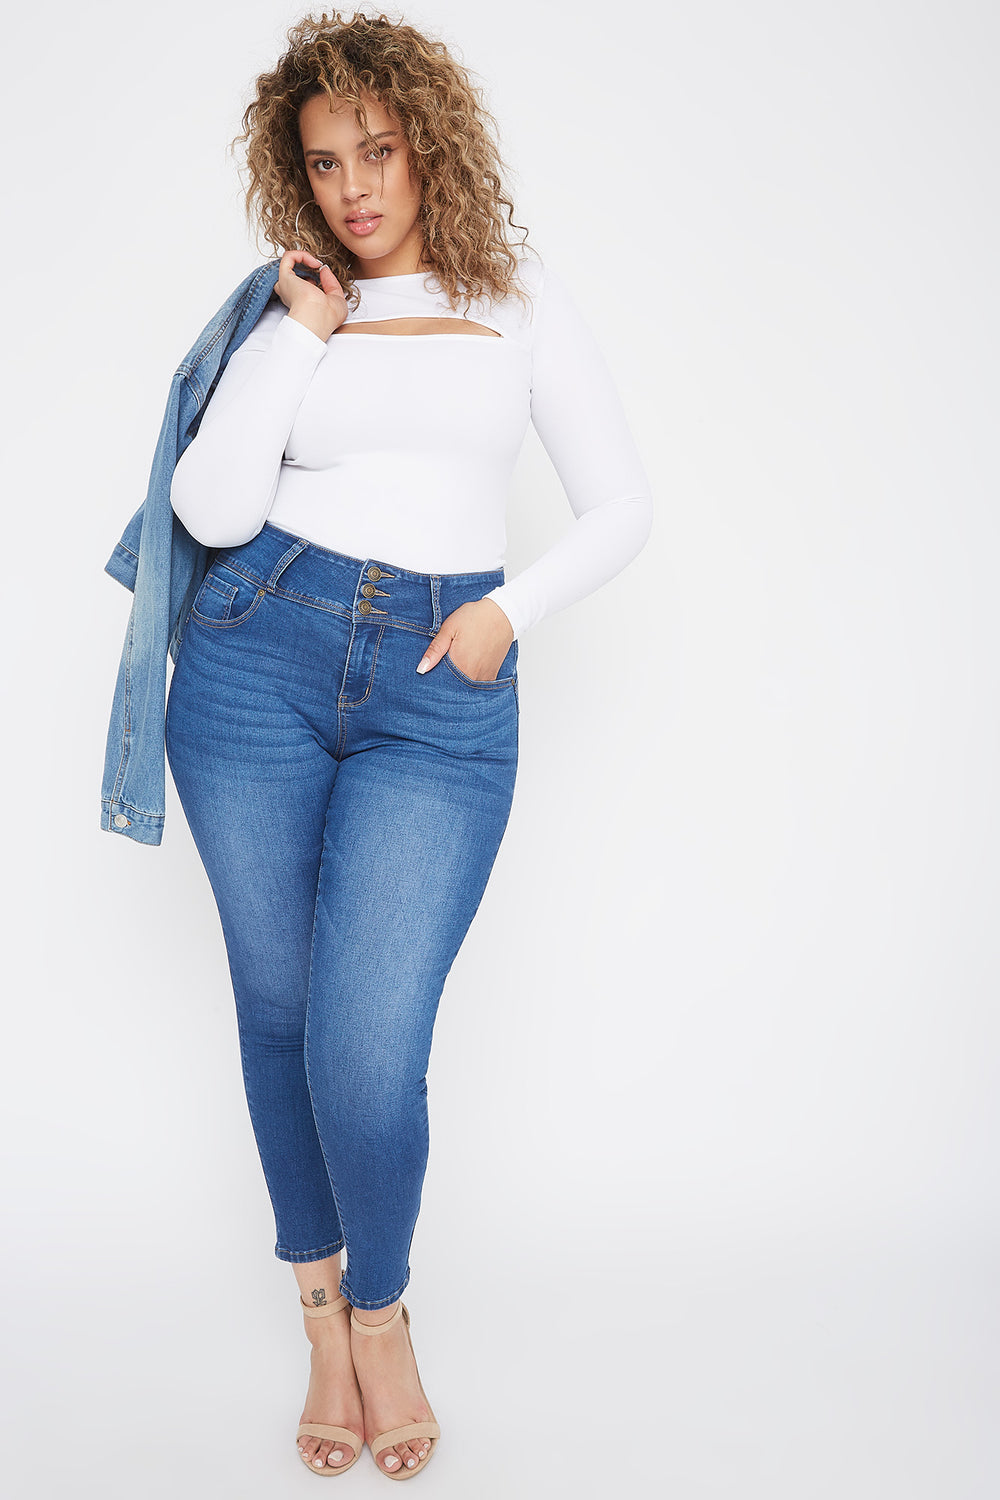 Plus Size Butt, I Love You 3-Tier High-Rise Push-Up Skinny Jean Medium Blue